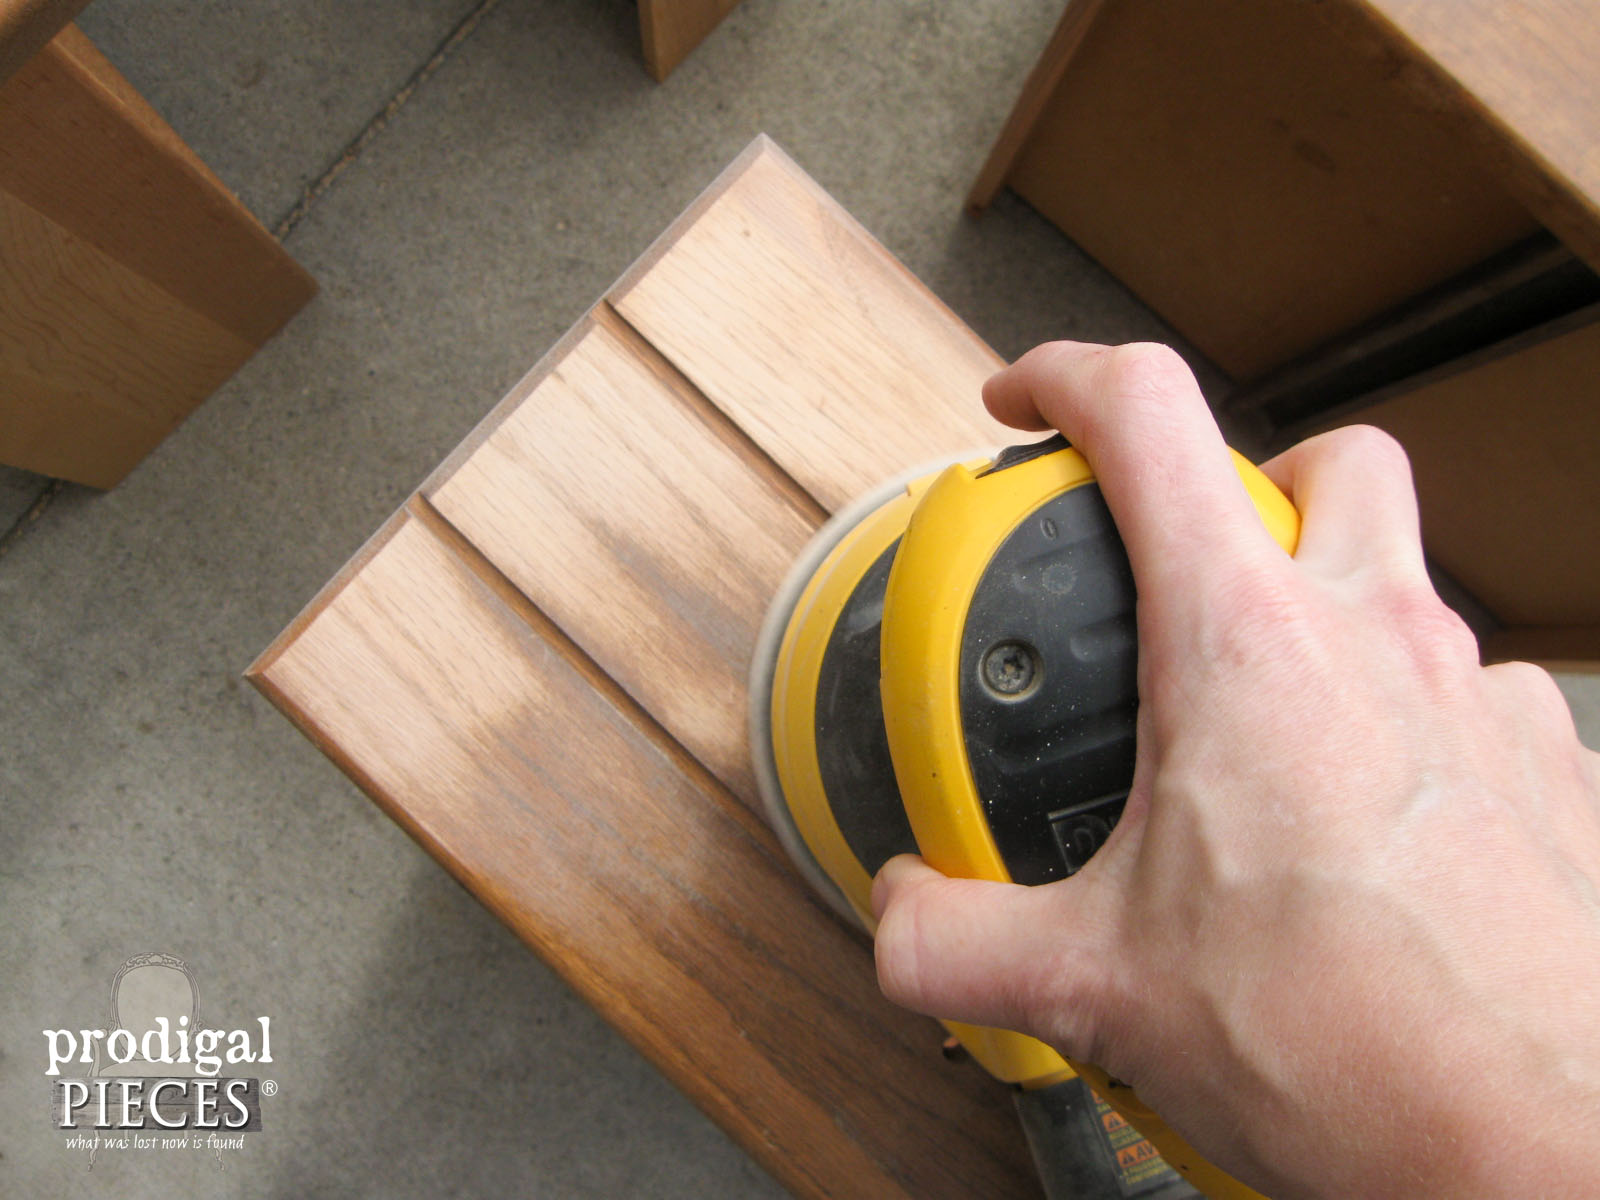 Sanding Dresser Drawer Fronts | Prodigal Pieces | www.prodigalpieces.com